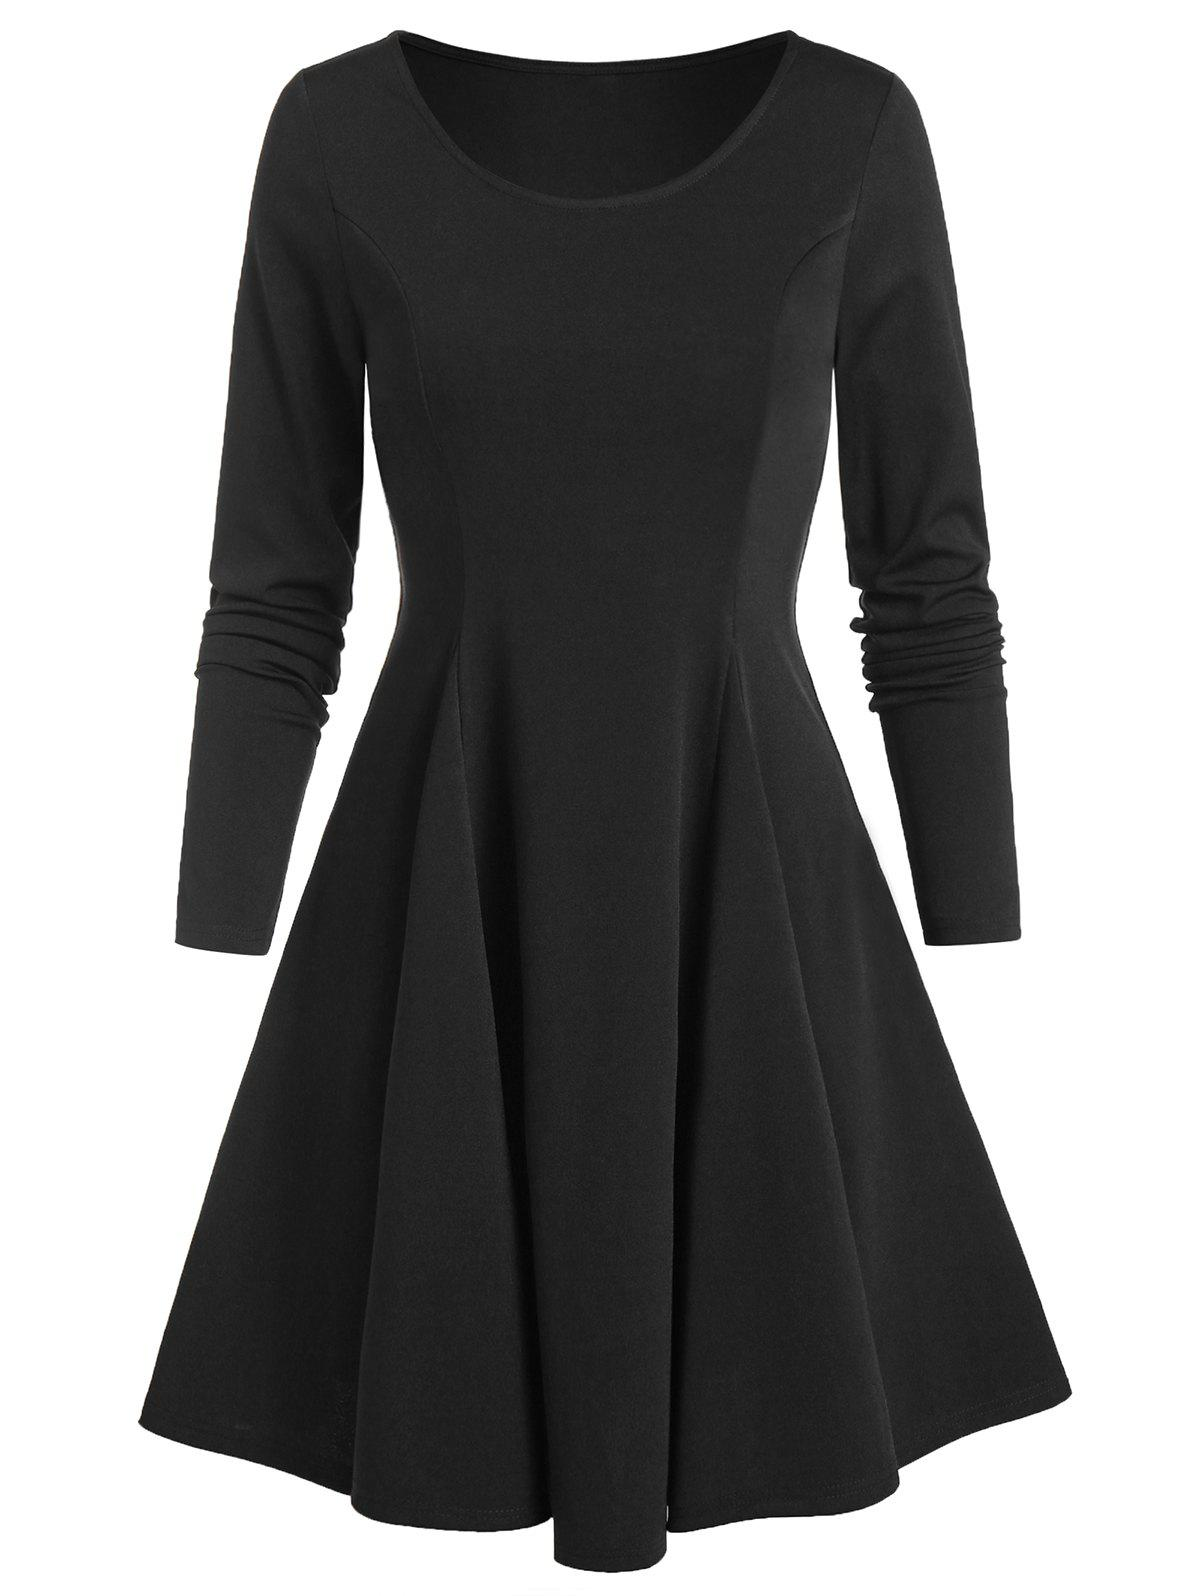 Long Sleeve Fit and Flare Plain Dress - BLACK 3XL